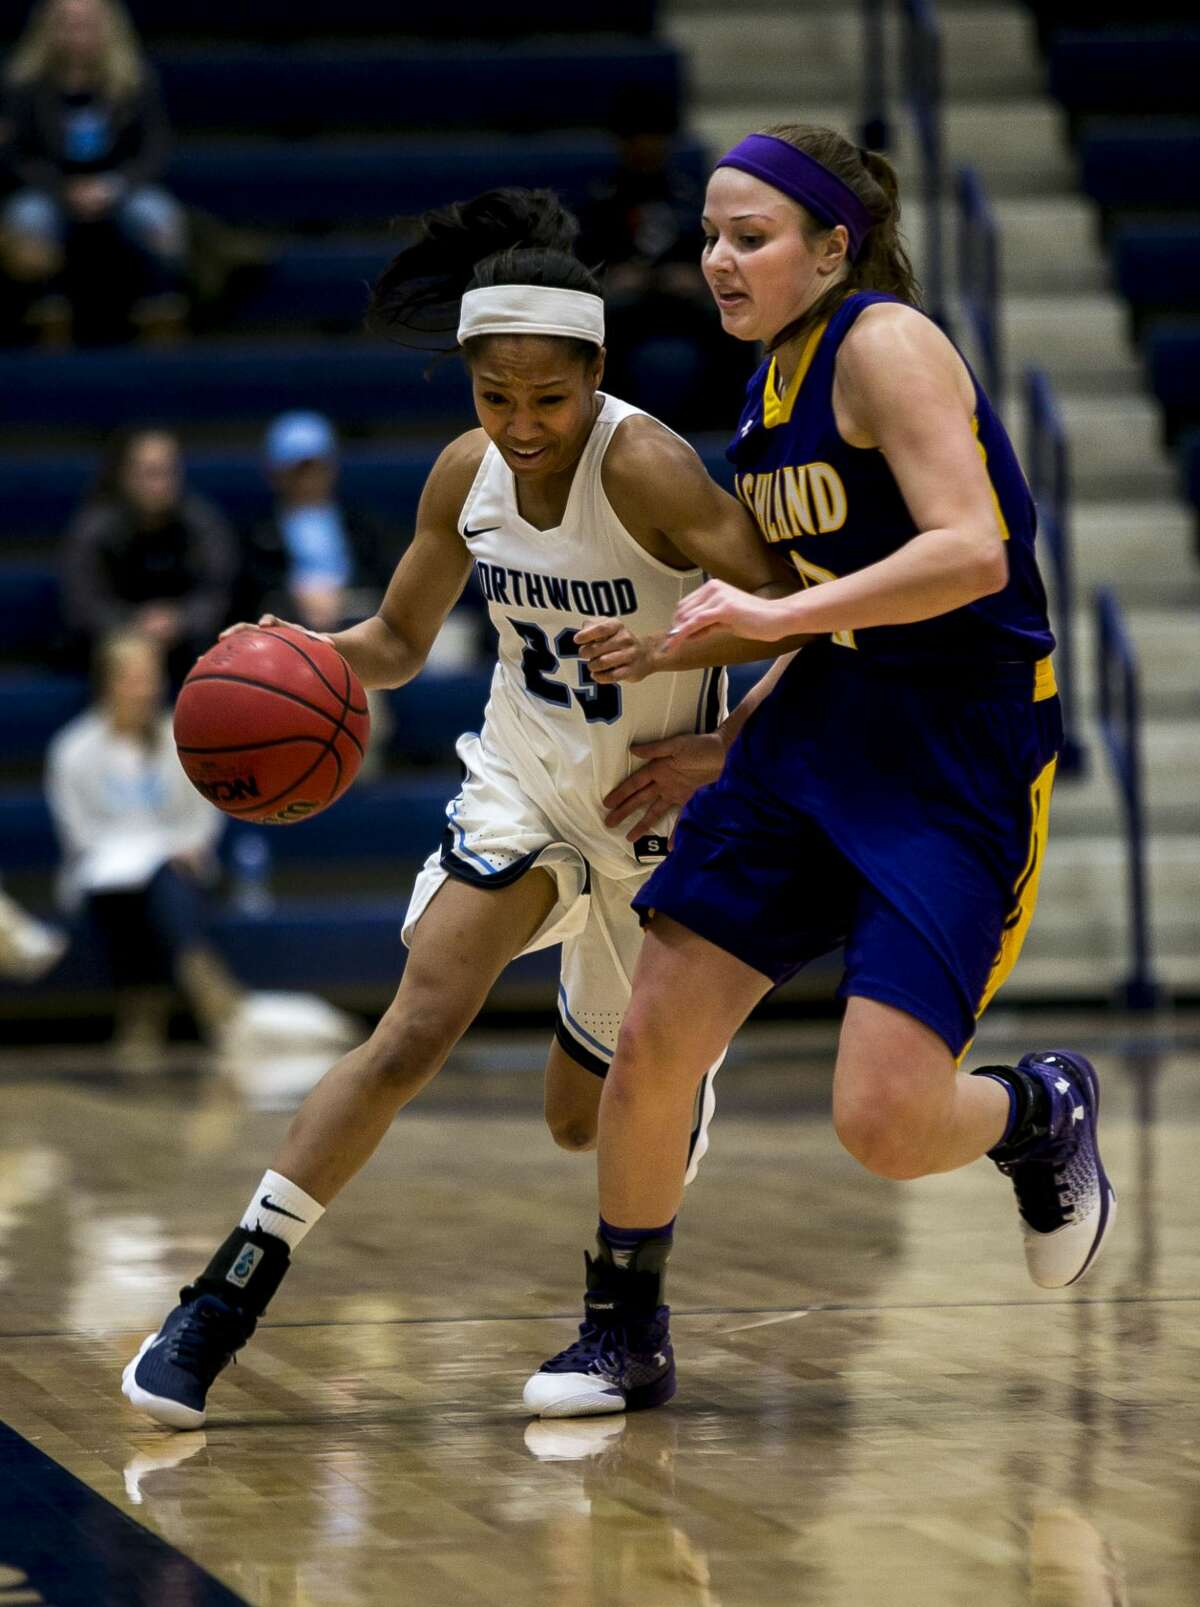 Northwood's Zaikai Wells drives the ball as Ashland's Maddie Dackin blocks her as Northwood plays Ashland at Riepma Arena in Midland on Saturday, Jan. 20, 2018. (Josie Norris/for the Daily News)